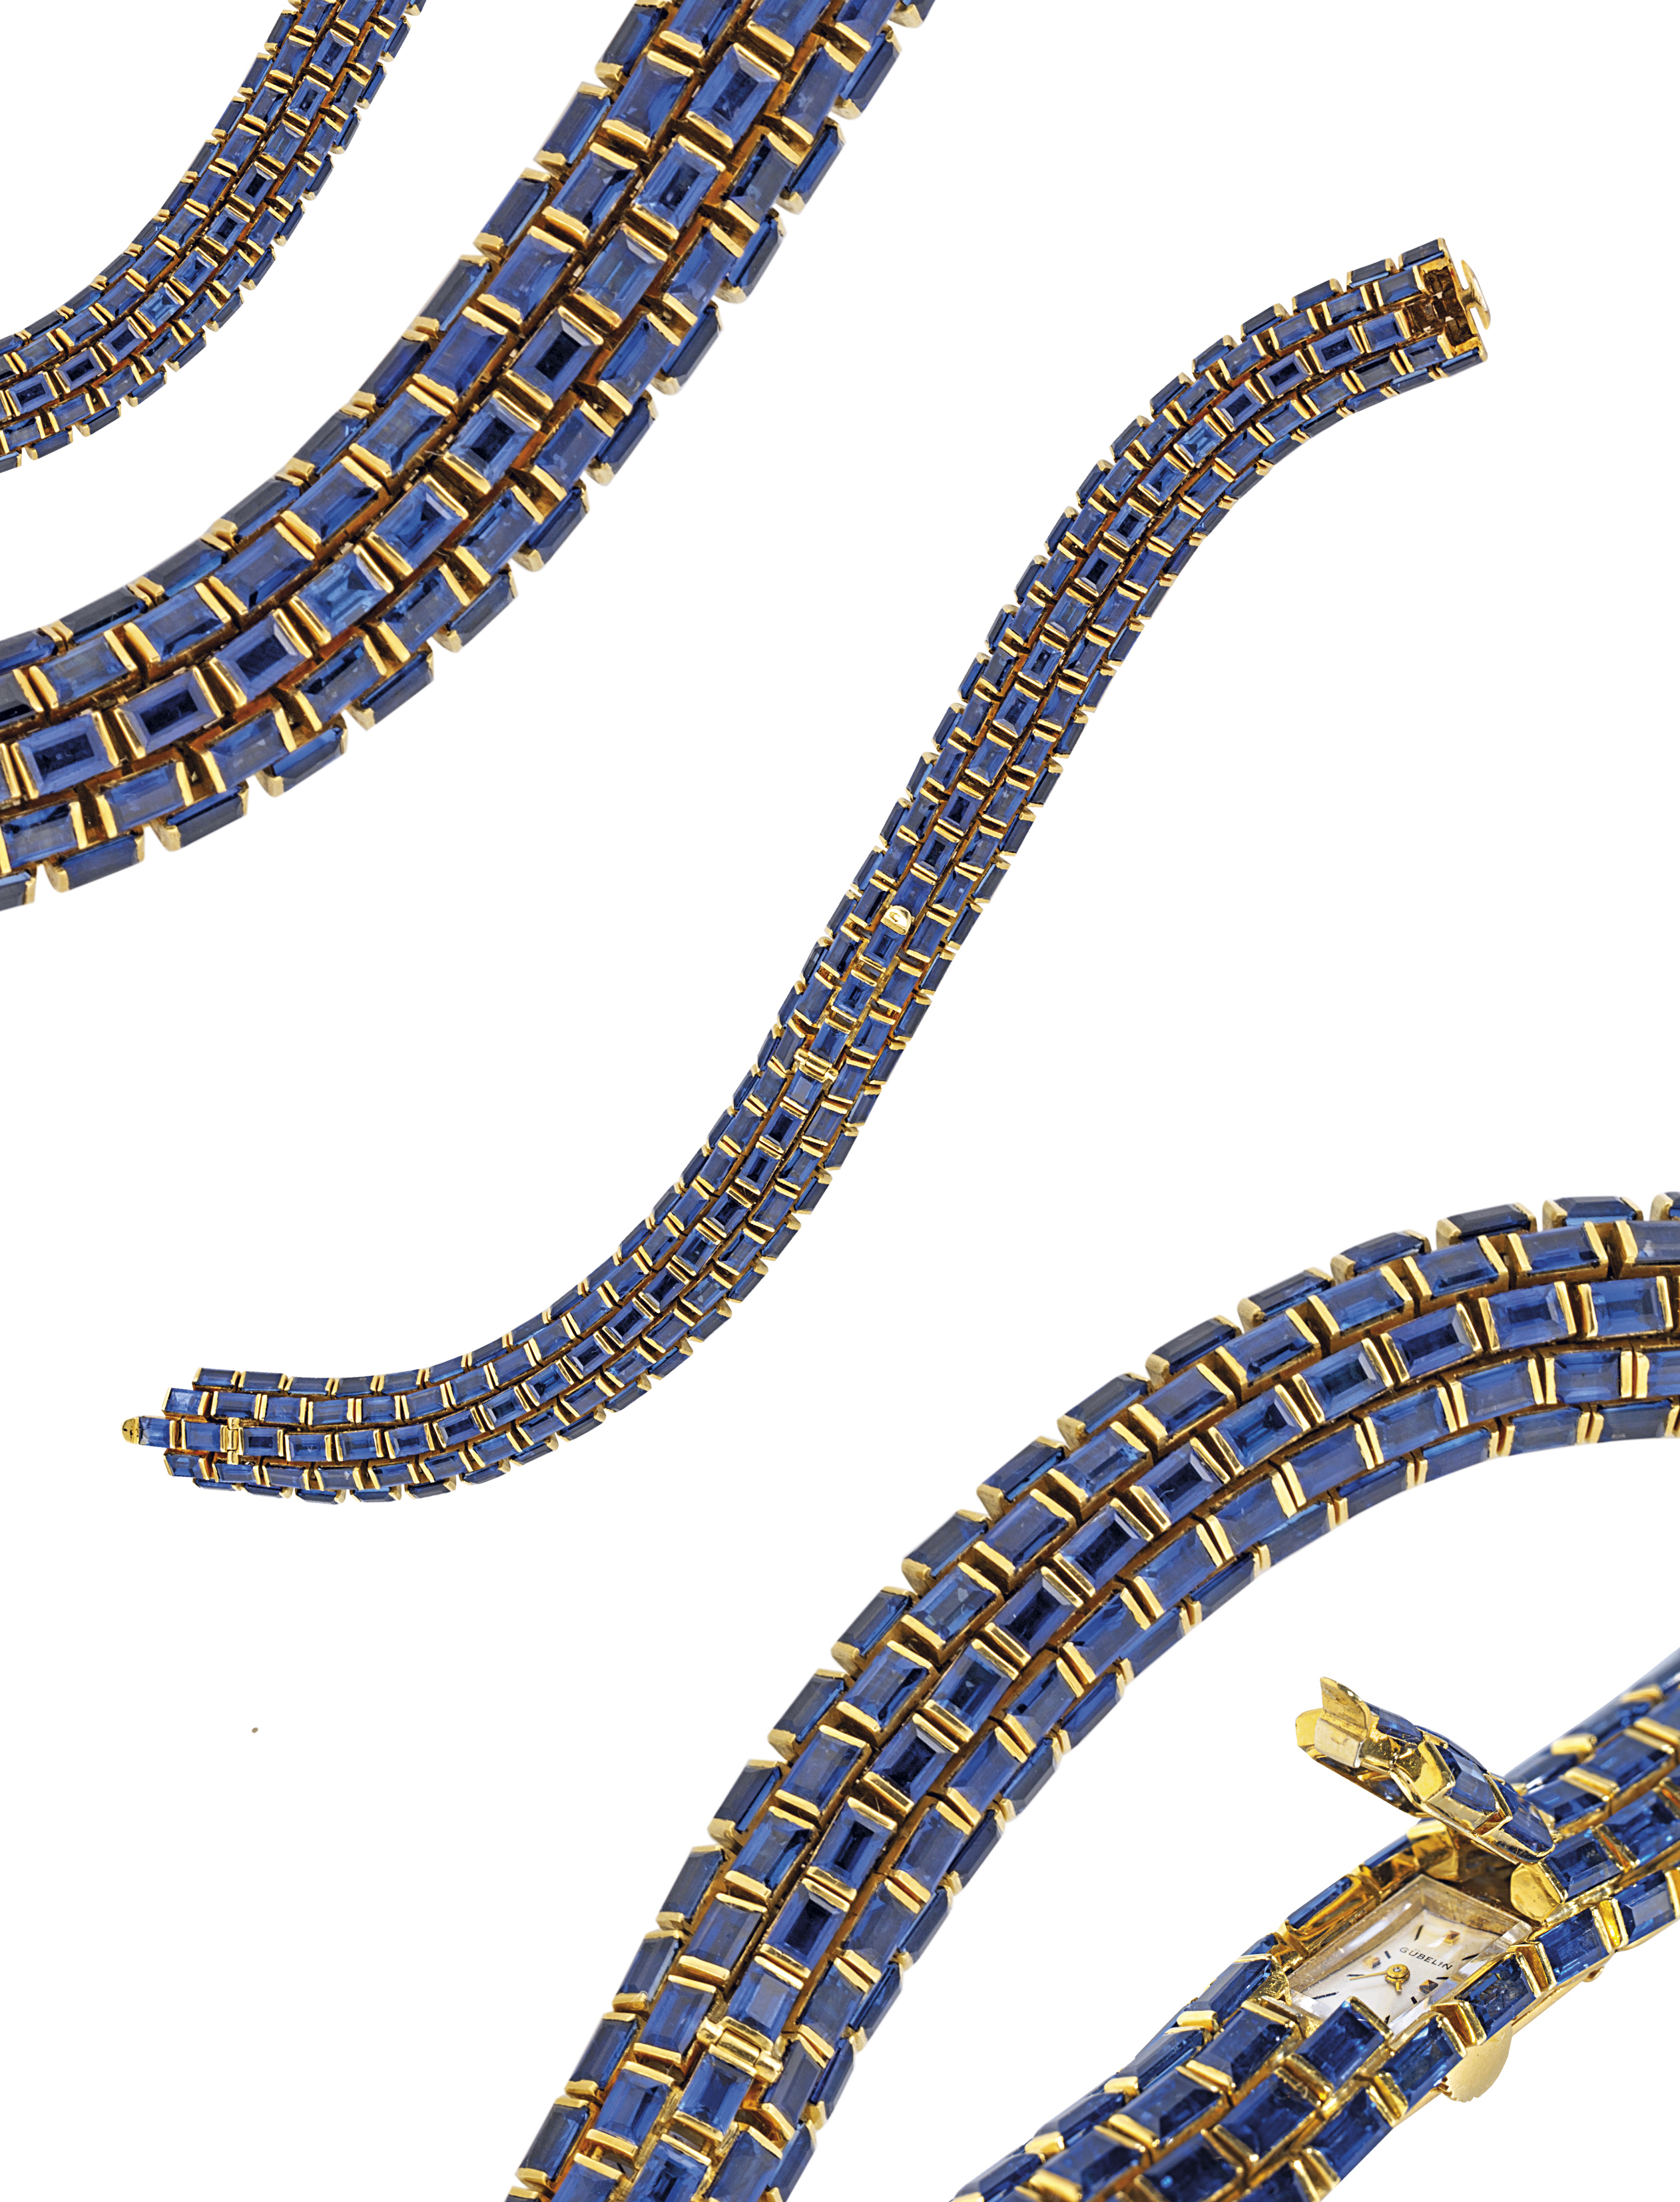 GÜBELIN  LADY'S YELLOW GOLD MANUALLY-WOUND BRACELET WATCH WITH CONCEALED DIAL, ENTIRELY SET WITH 175 BAGUETTE-CUT SAPPHIRE WEIGHING APPROXIMATELY 28 CTS.